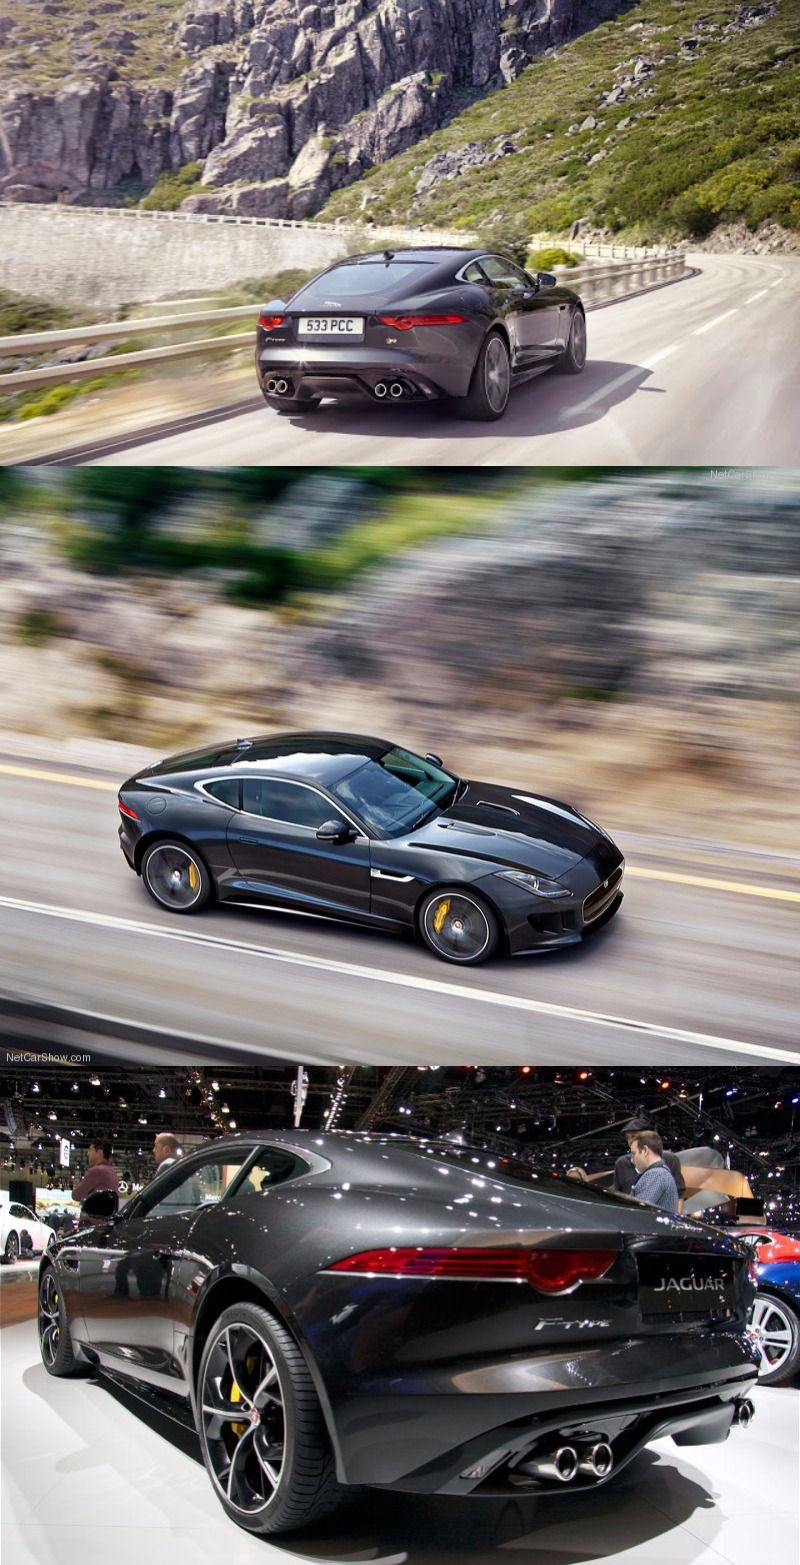 jaguar has launched its new car F Type R Coupe comes with